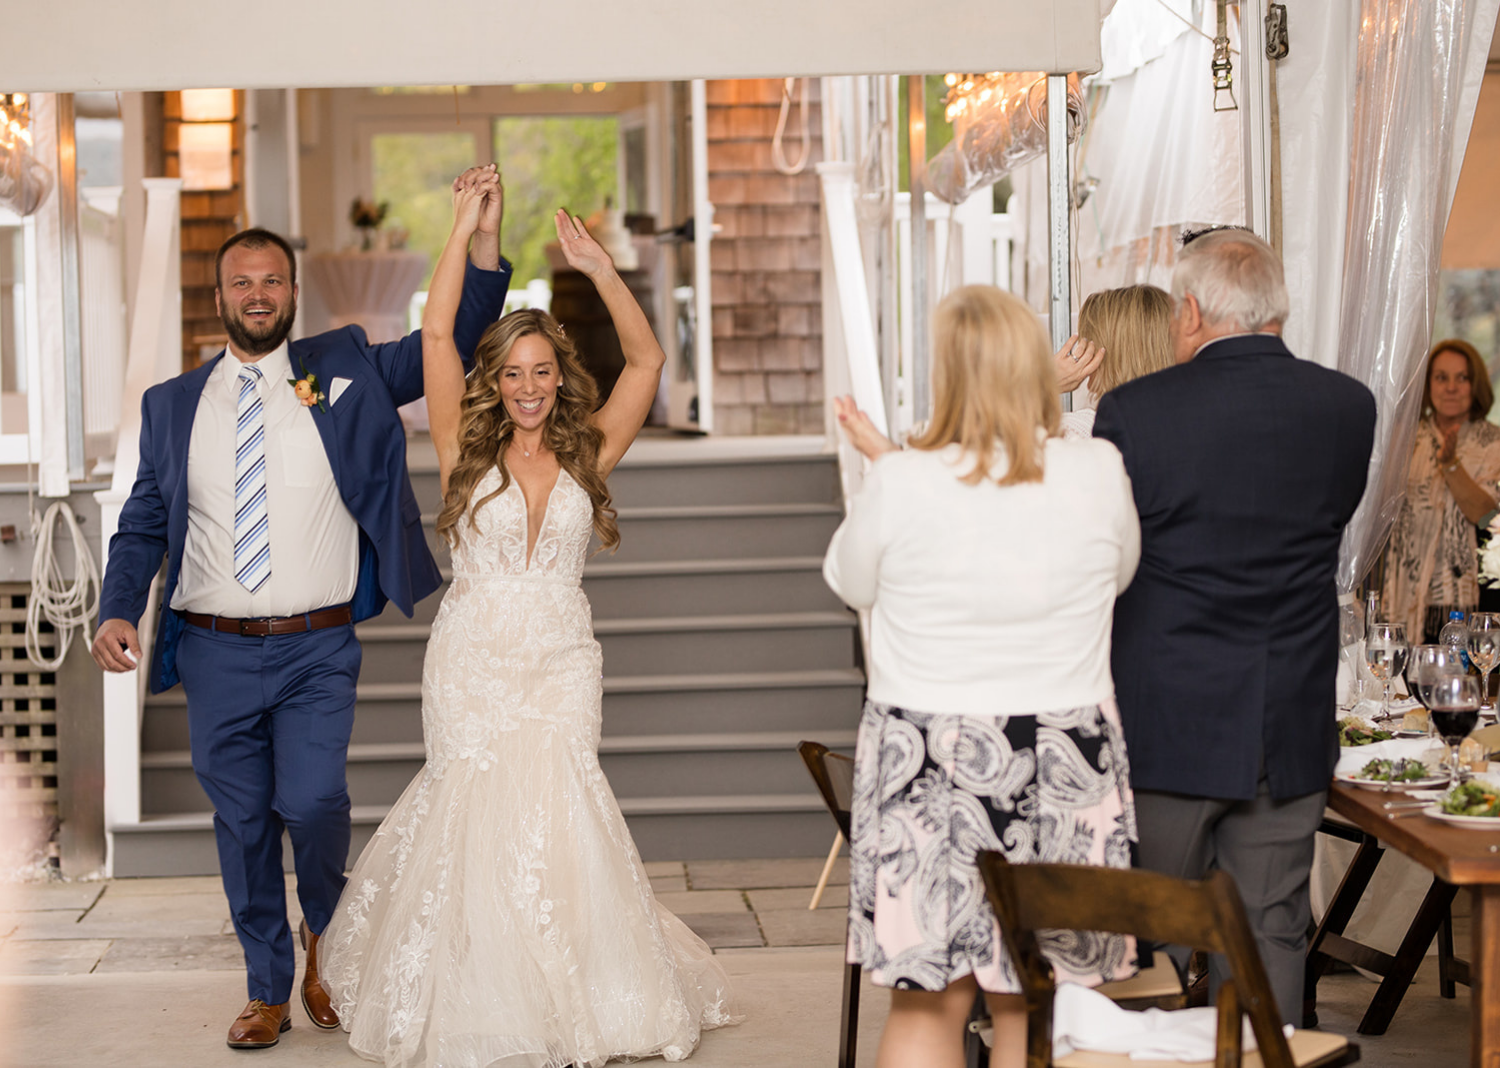 bride and groom make their first entrance to their wedding reception as husband and wife